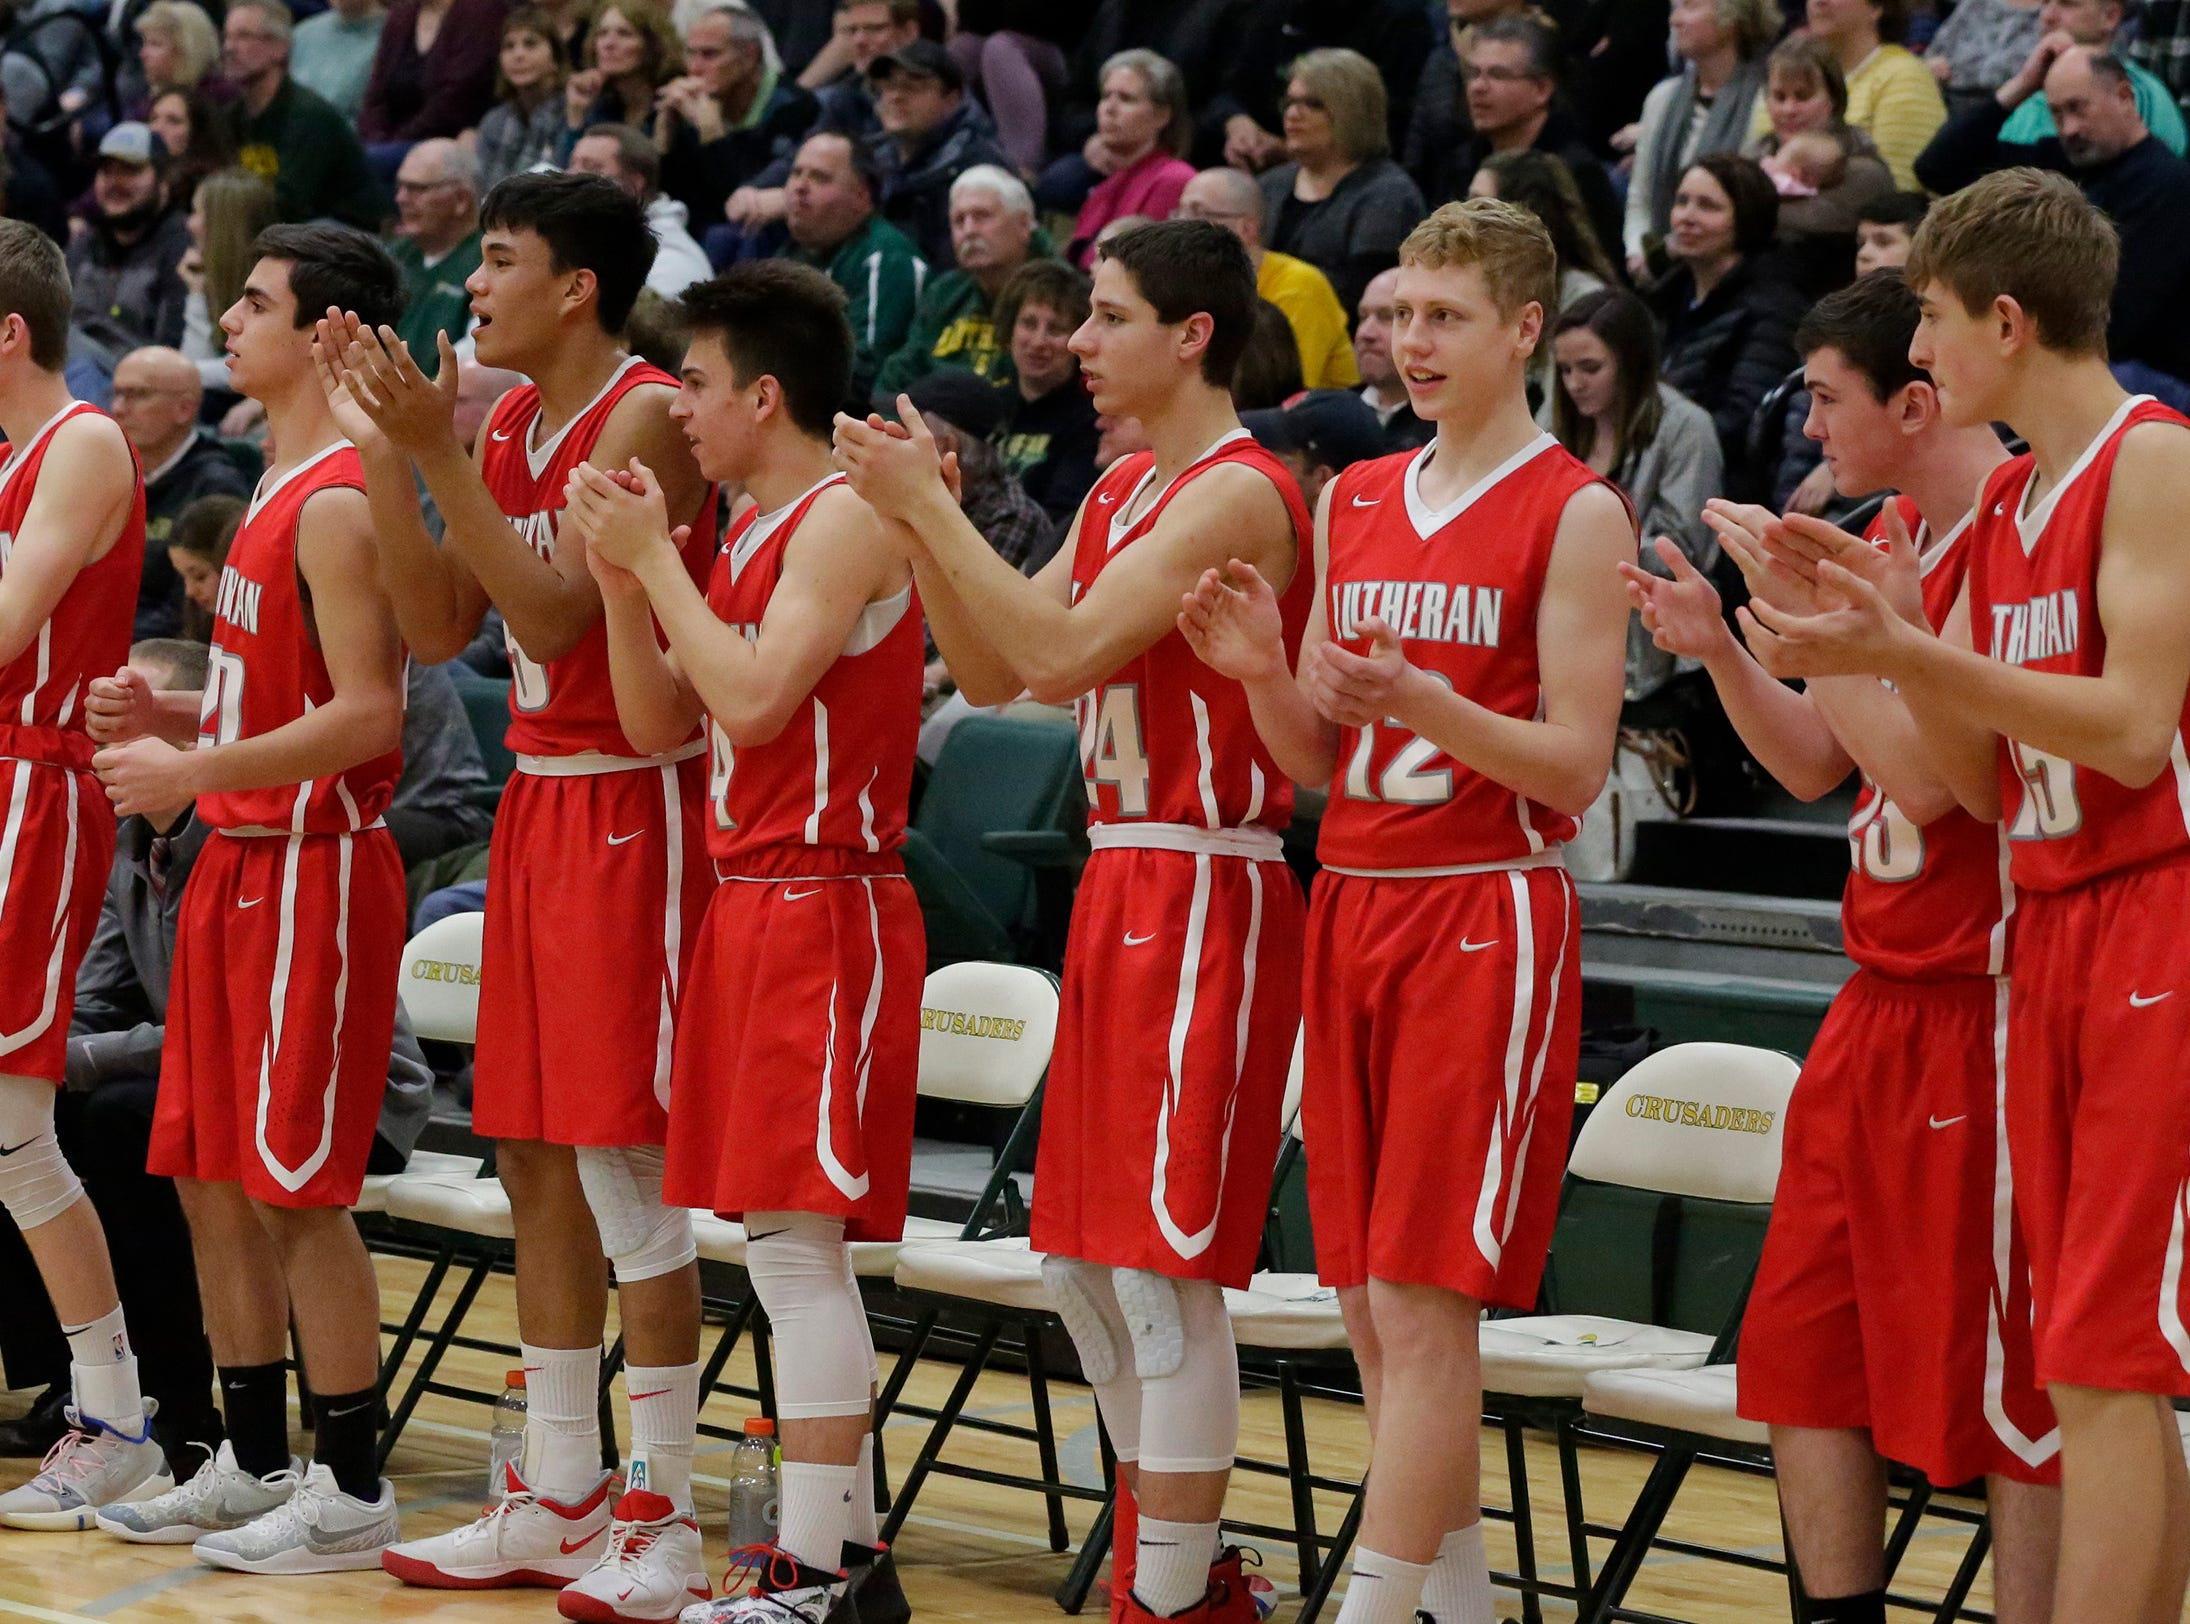 Manitowoc Lutheran players cheer their team mates during action with Sheboygan Lutheran, Friday, February 1, 2019, in Sheboygan, Wis.